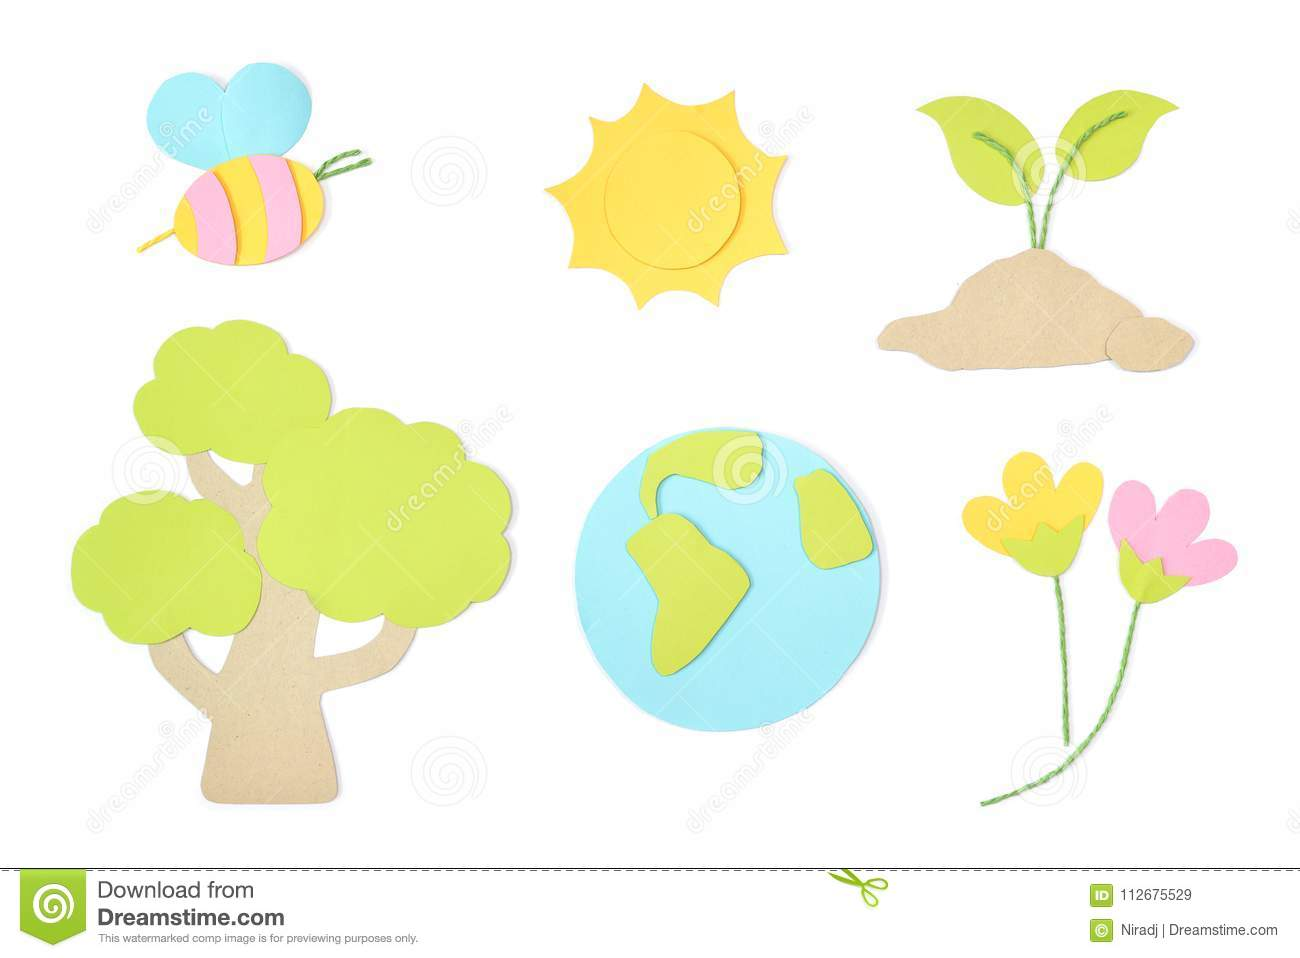 Earth day element paper cut on white background